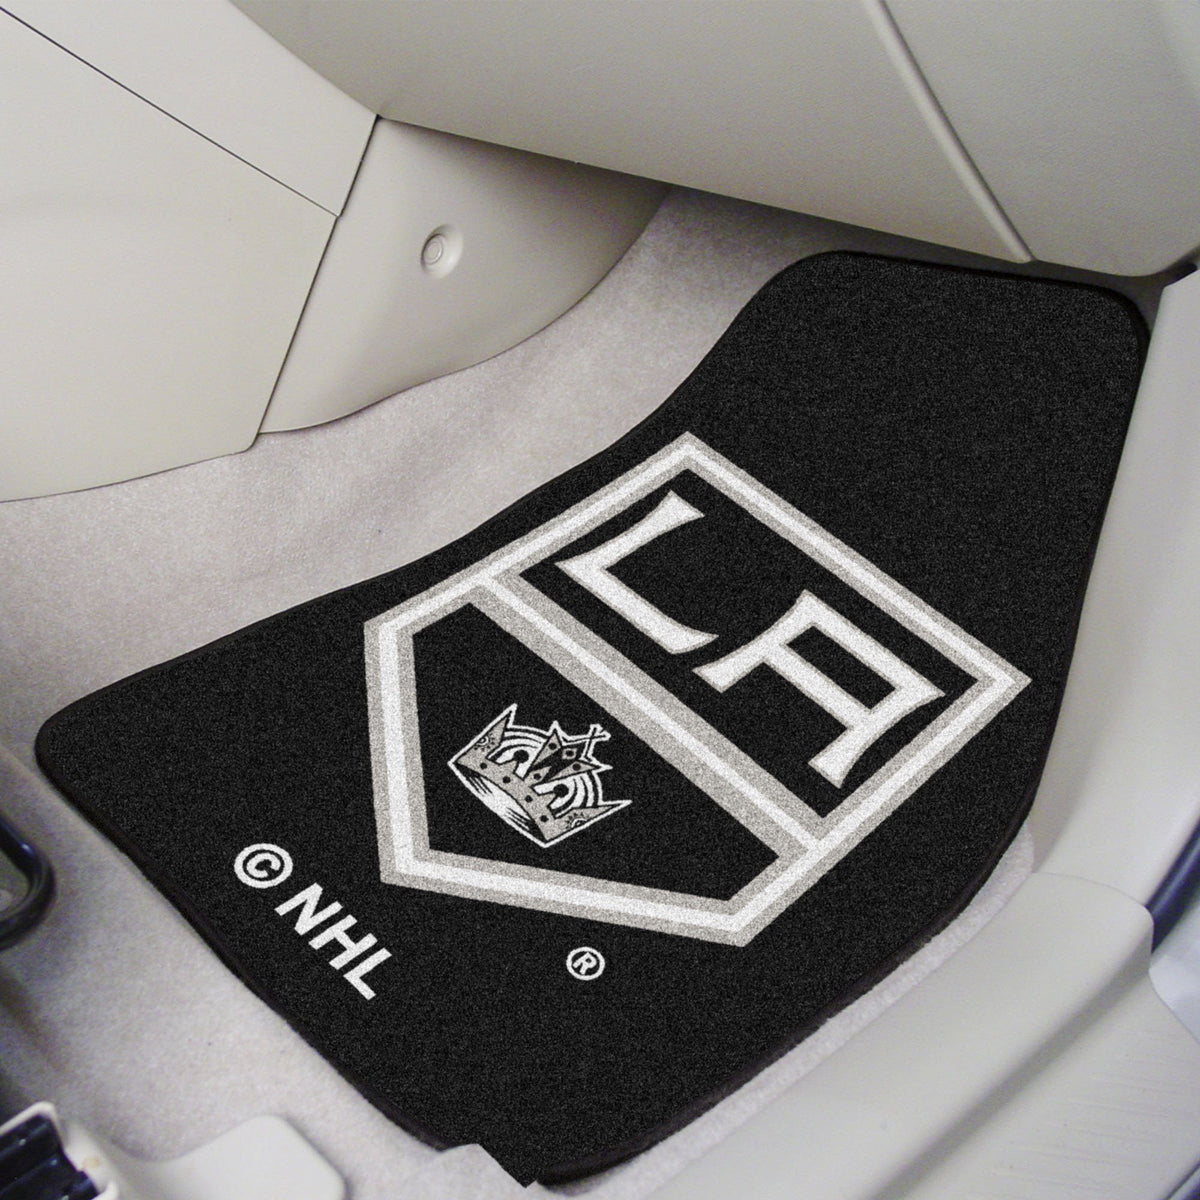 NHL - Carpet Car Mat, 2-Piece Set NHL Mats, Front Car Mats, 2-pc Carpet Car Mat Set, NHL, Auto Fan Mats Los Angeles Kings